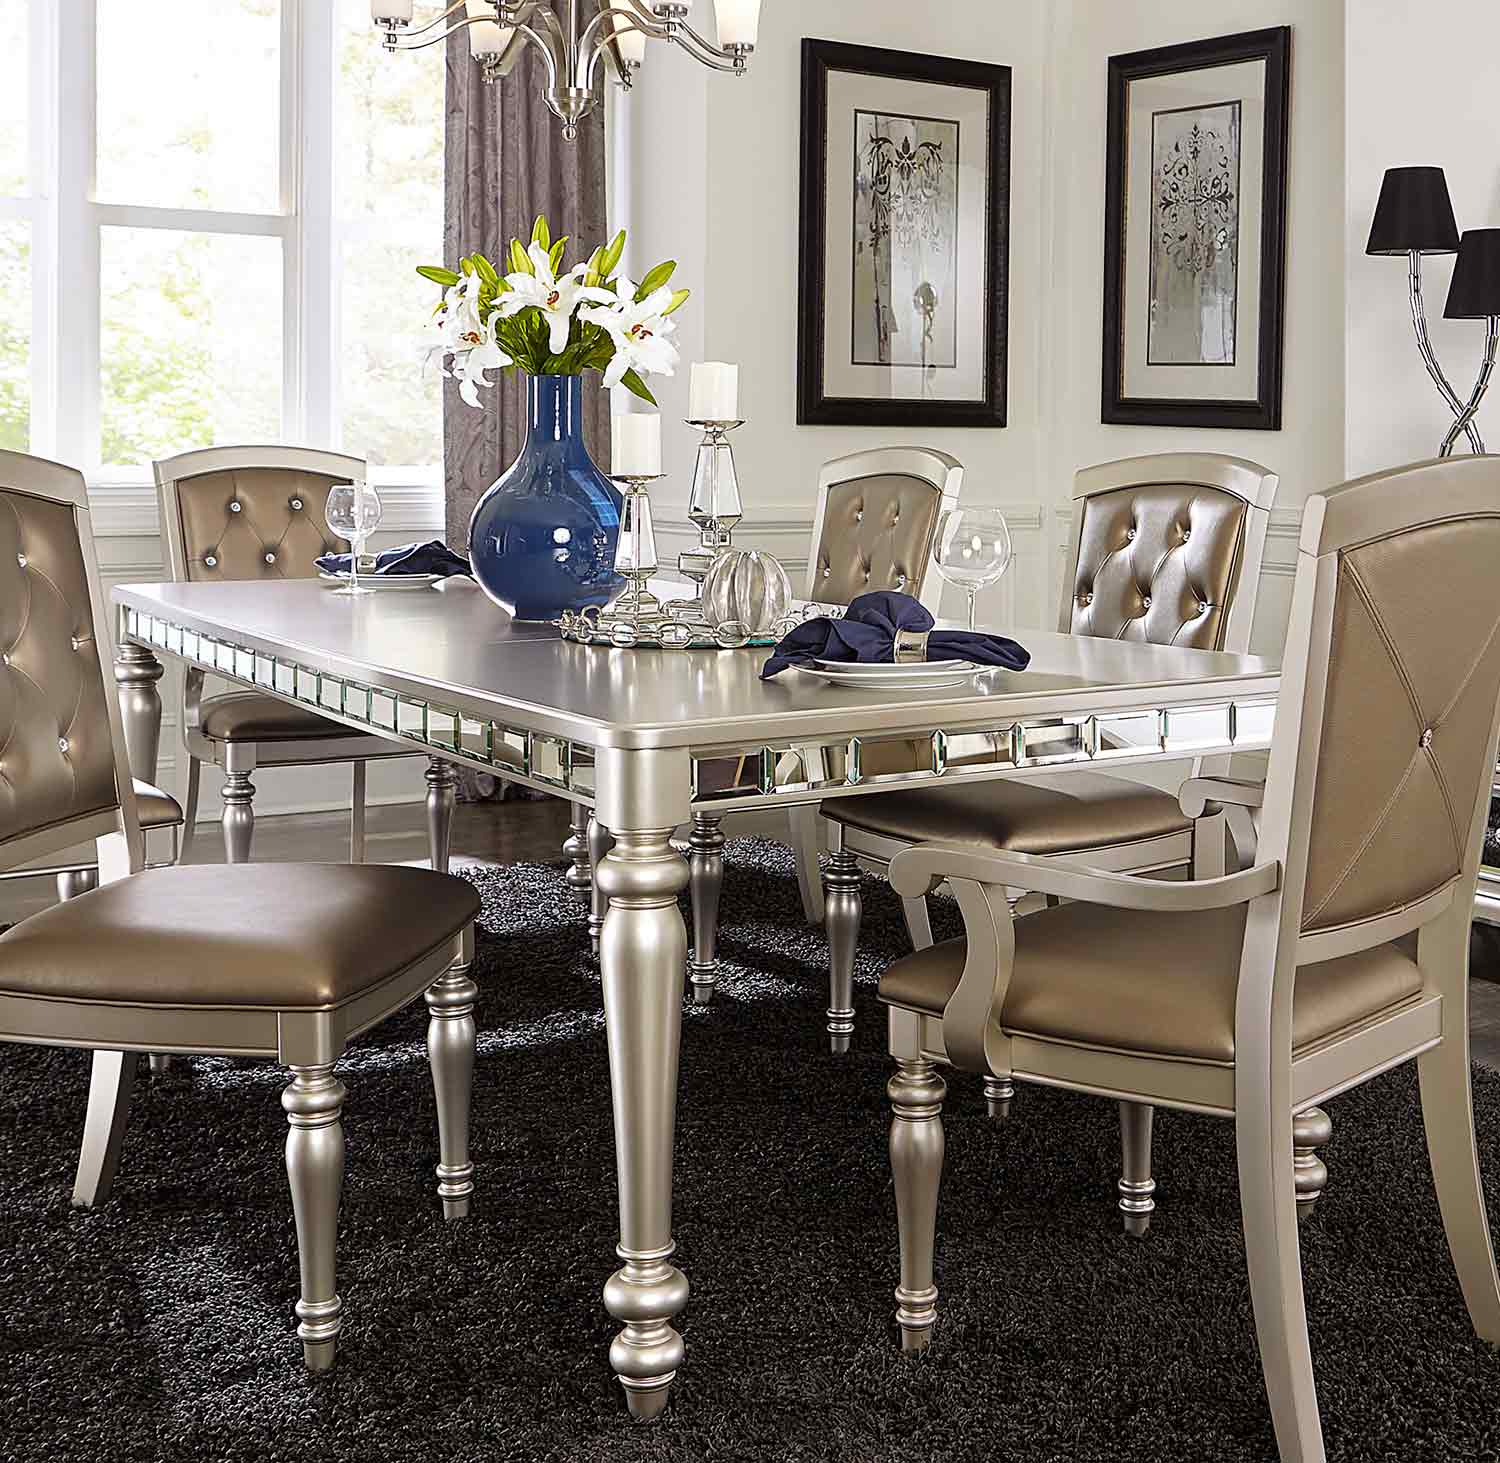 Homelegance Orsina Dining Table Silver 5477N 96 at Homelement